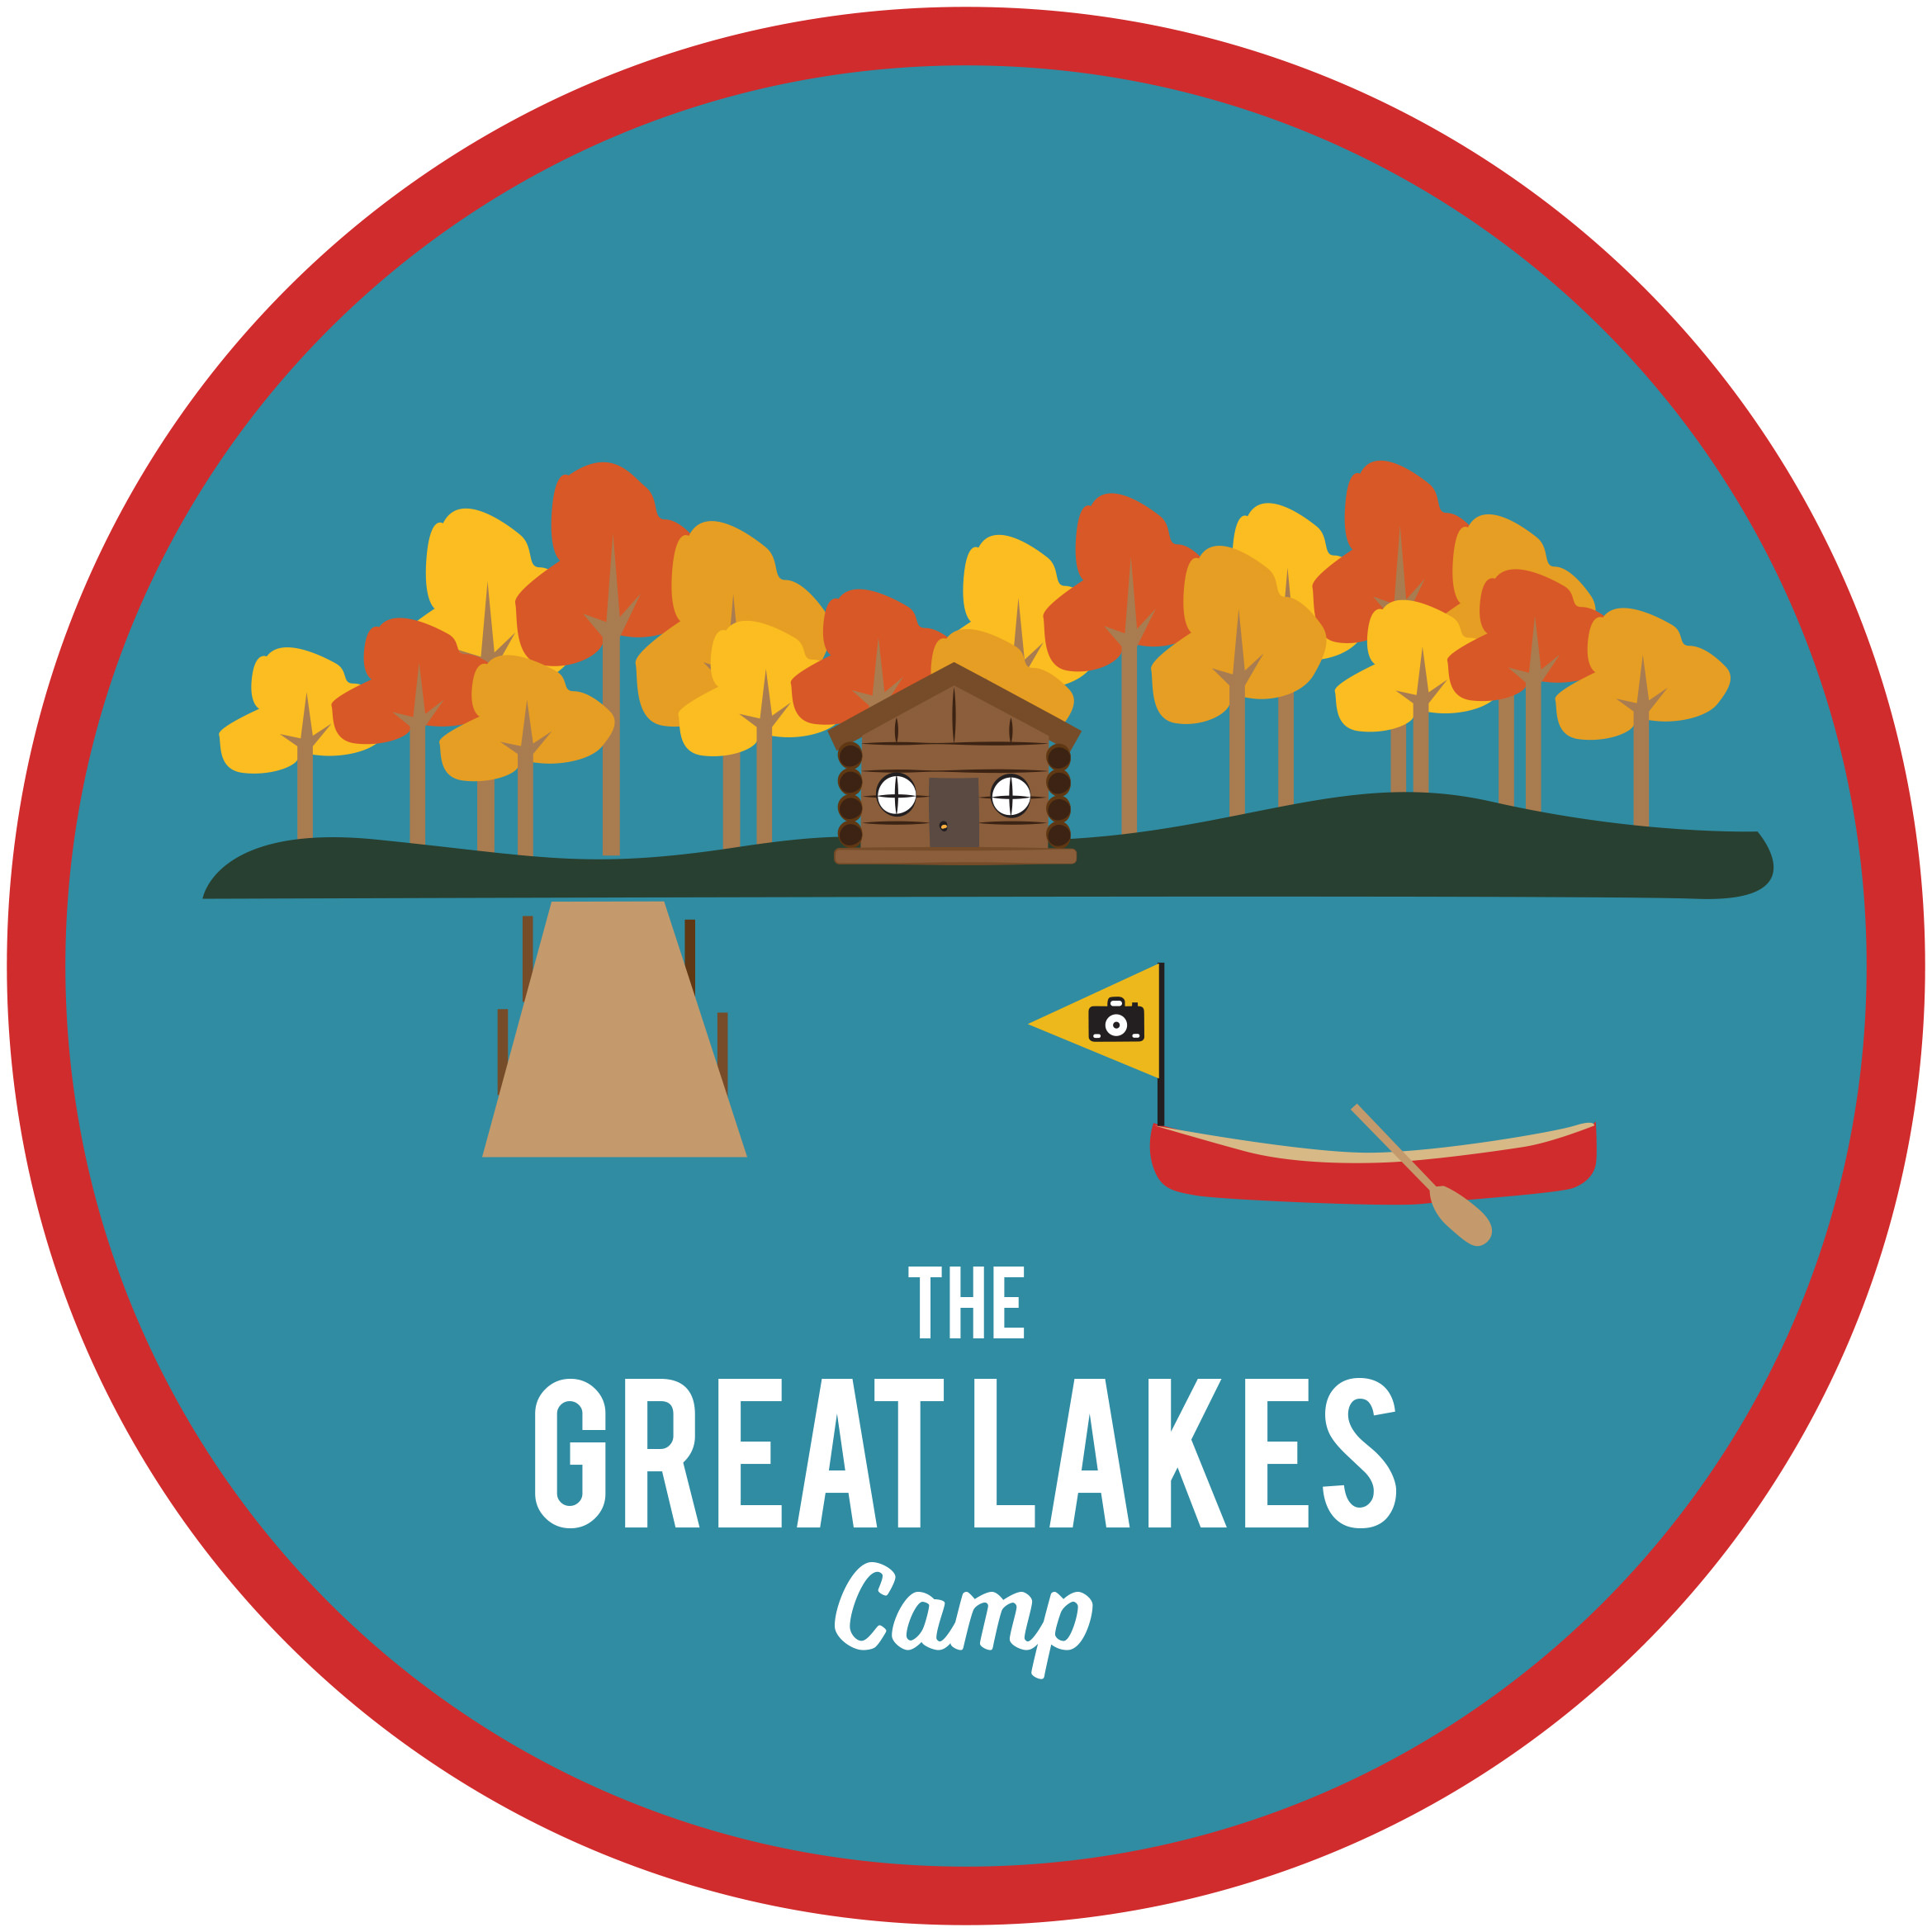 CampCollectiveButtons+Badges_GreatLakes.jpg